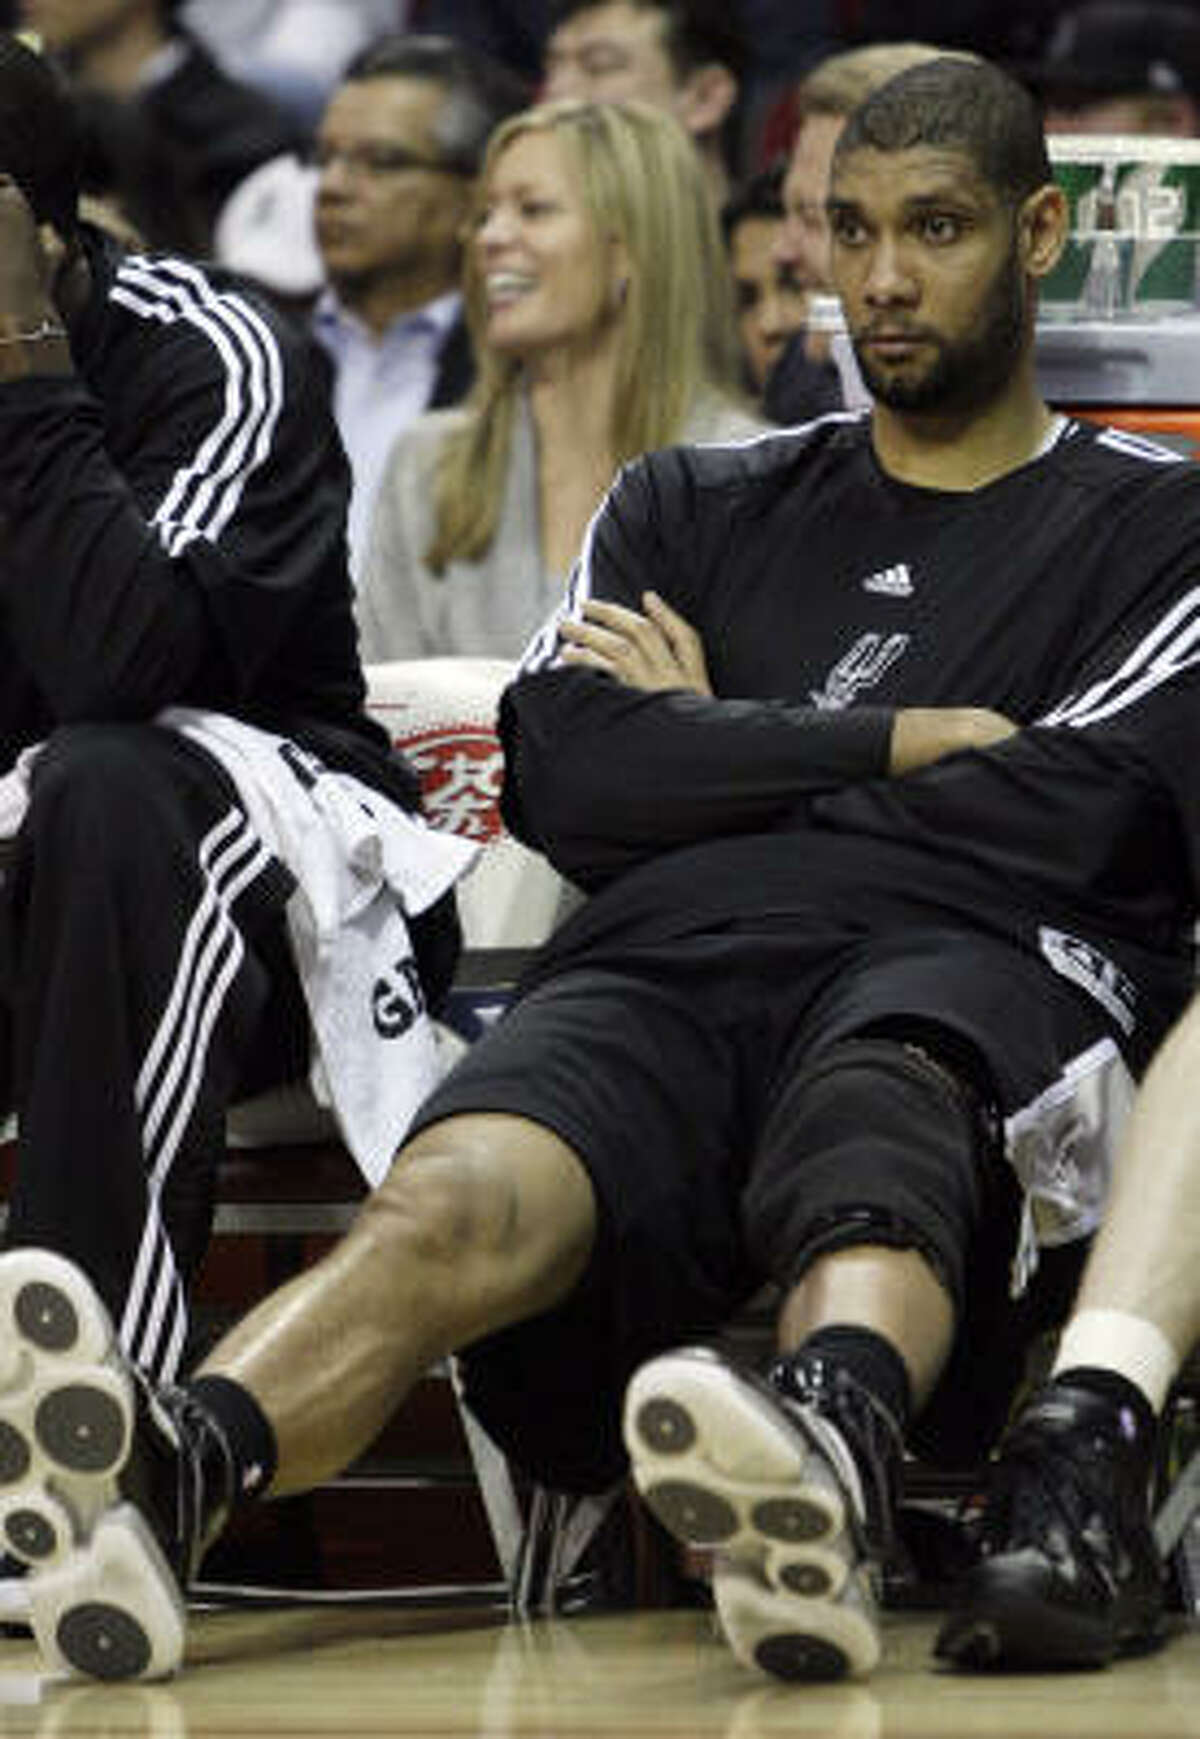 Spurs forward Tim Duncan sits on the bench during the Spurs' loss at the Toyota Center.